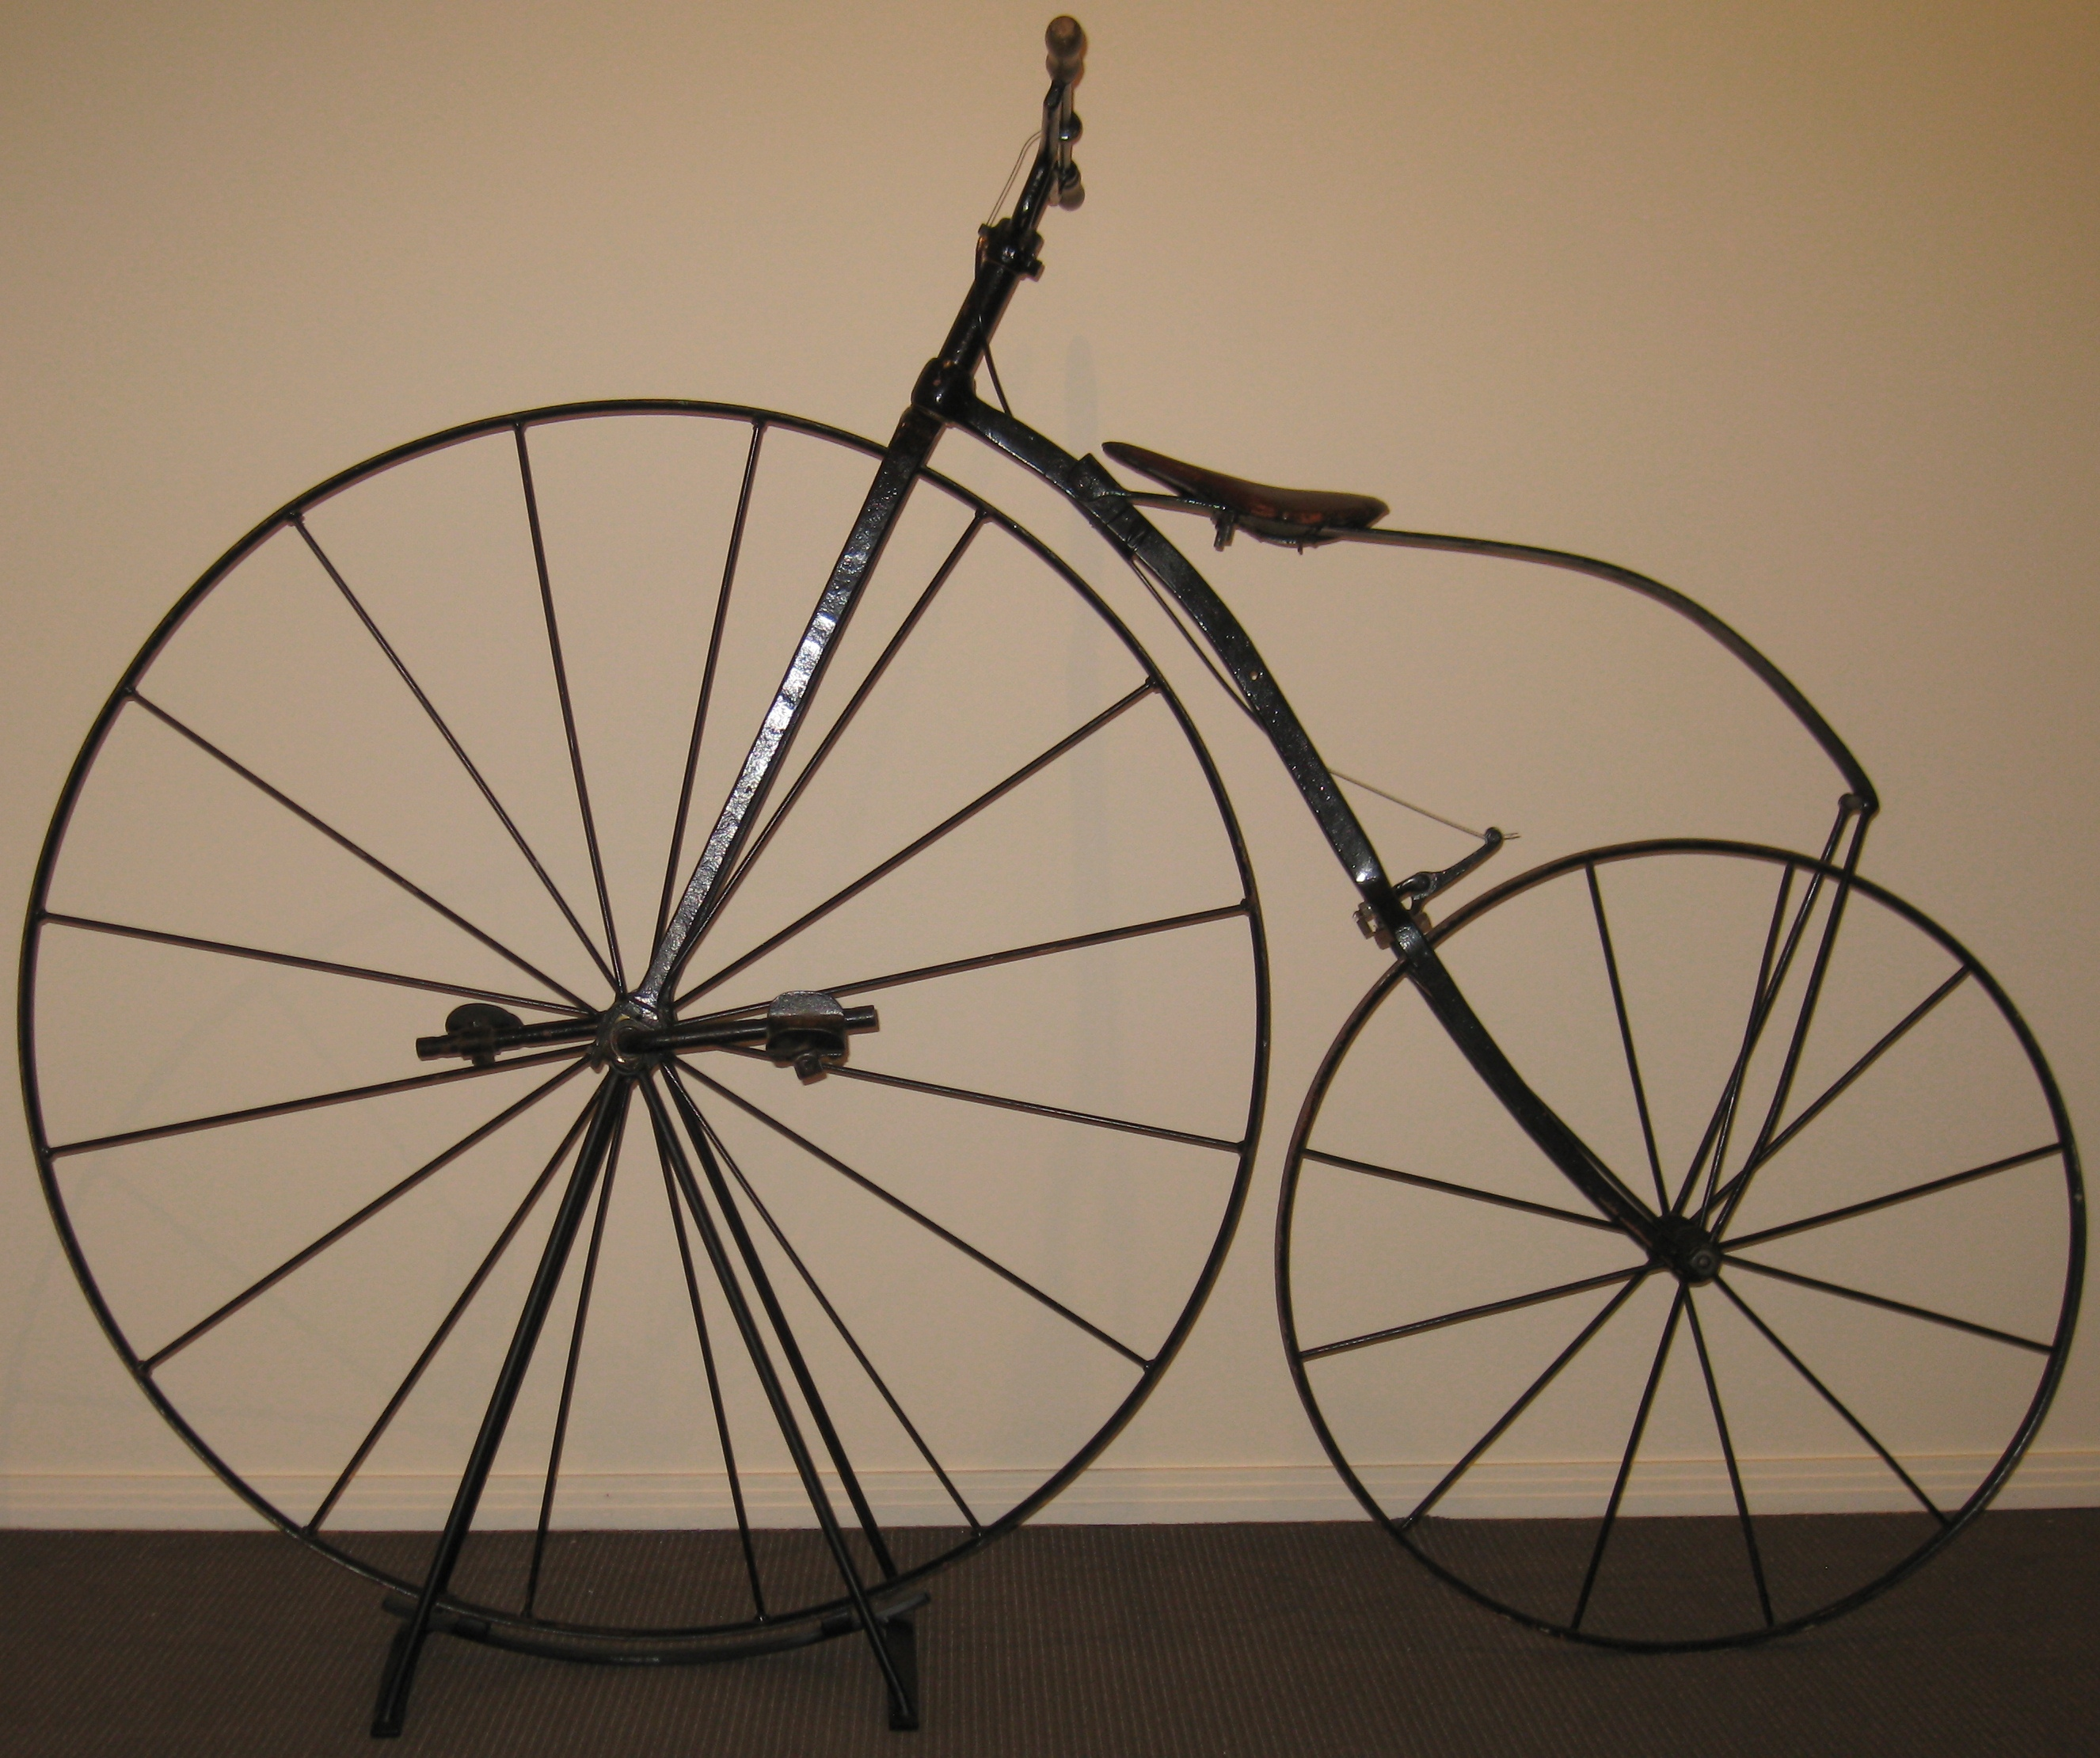 Velocipede, circa 1870s. This velocipede was owned by Athol Kelly who rode it in vintage bicycle races up until the 1990s; hence the modern additions such as brakes. (Gold Museum collection, 99.0014)